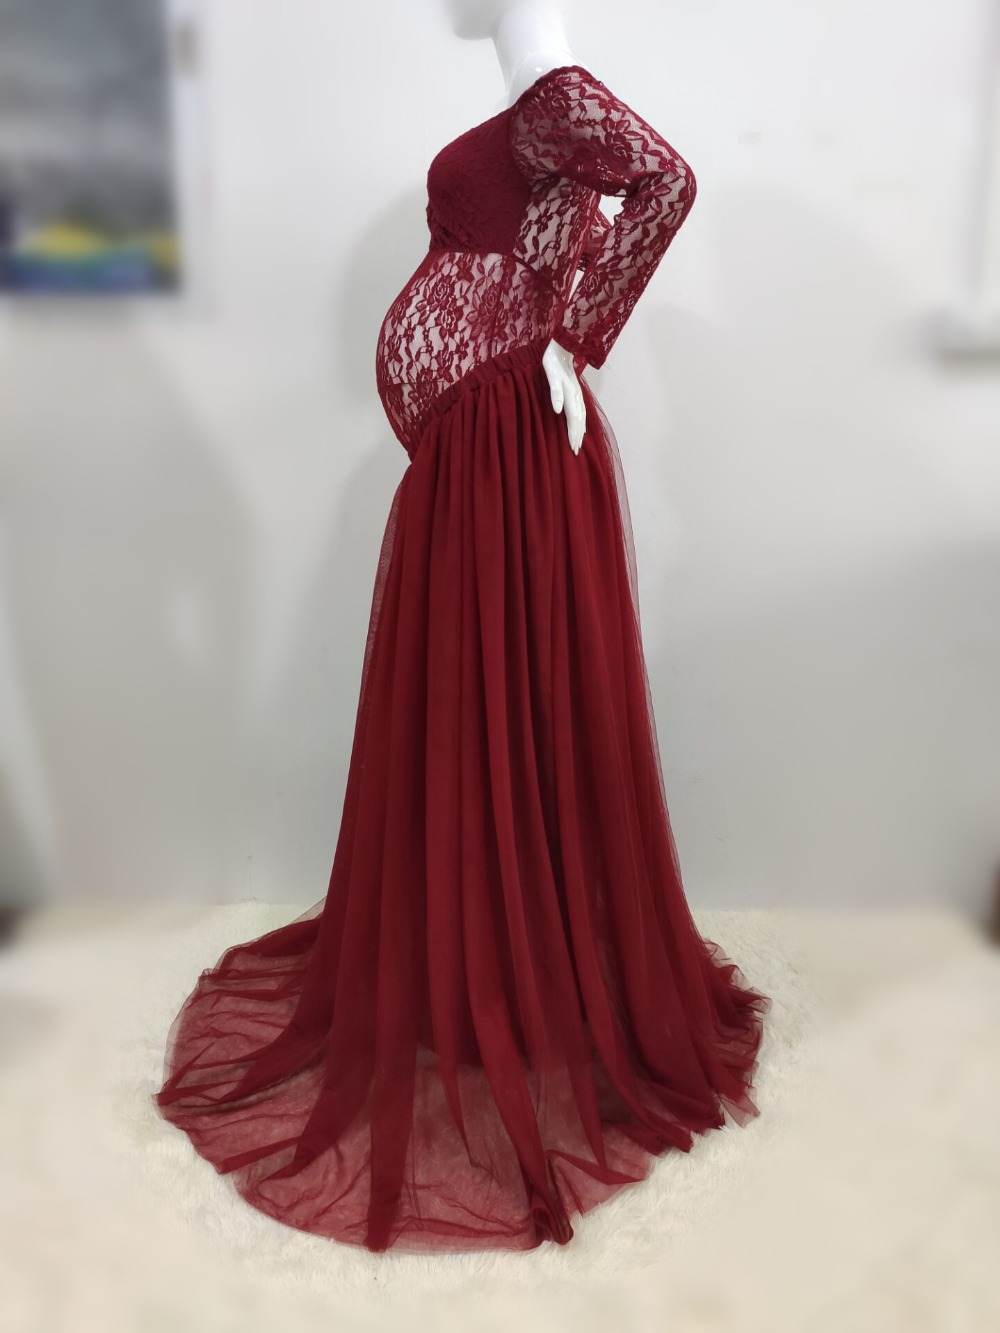 Sexy Lace Maternity Photography Props Long Dress Baby Shower Fancy Pregnancy Dress Photo Shoot For Pregnant Women Mesh Maxi Gown (17)